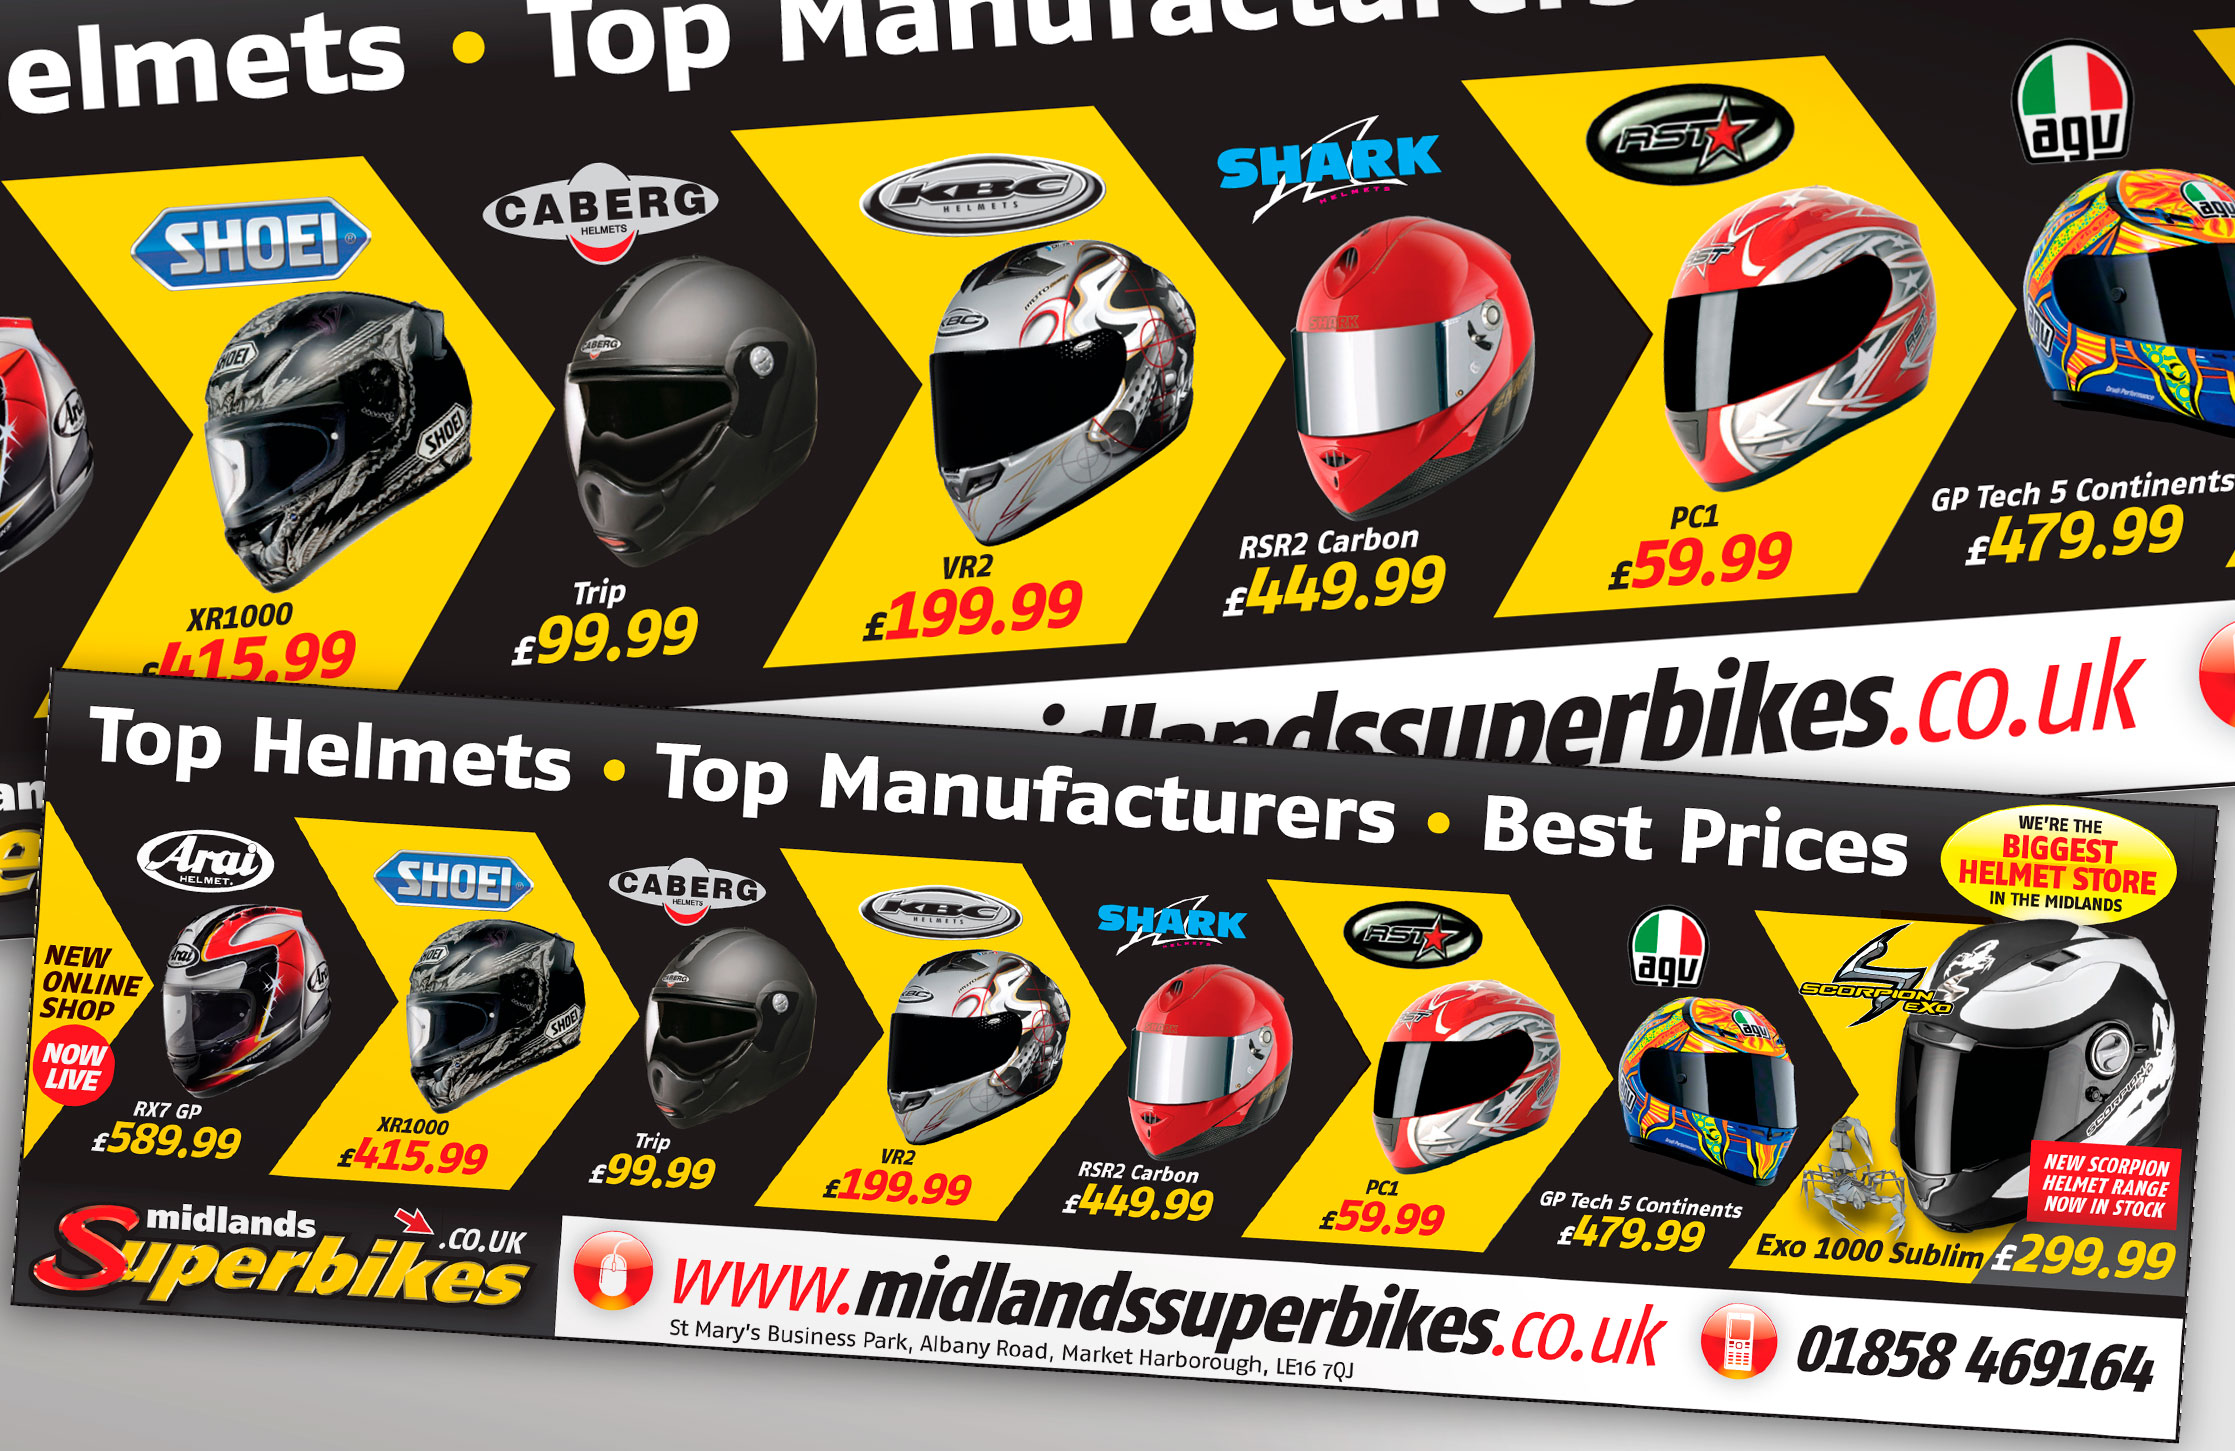 Midland Superbikes Advert